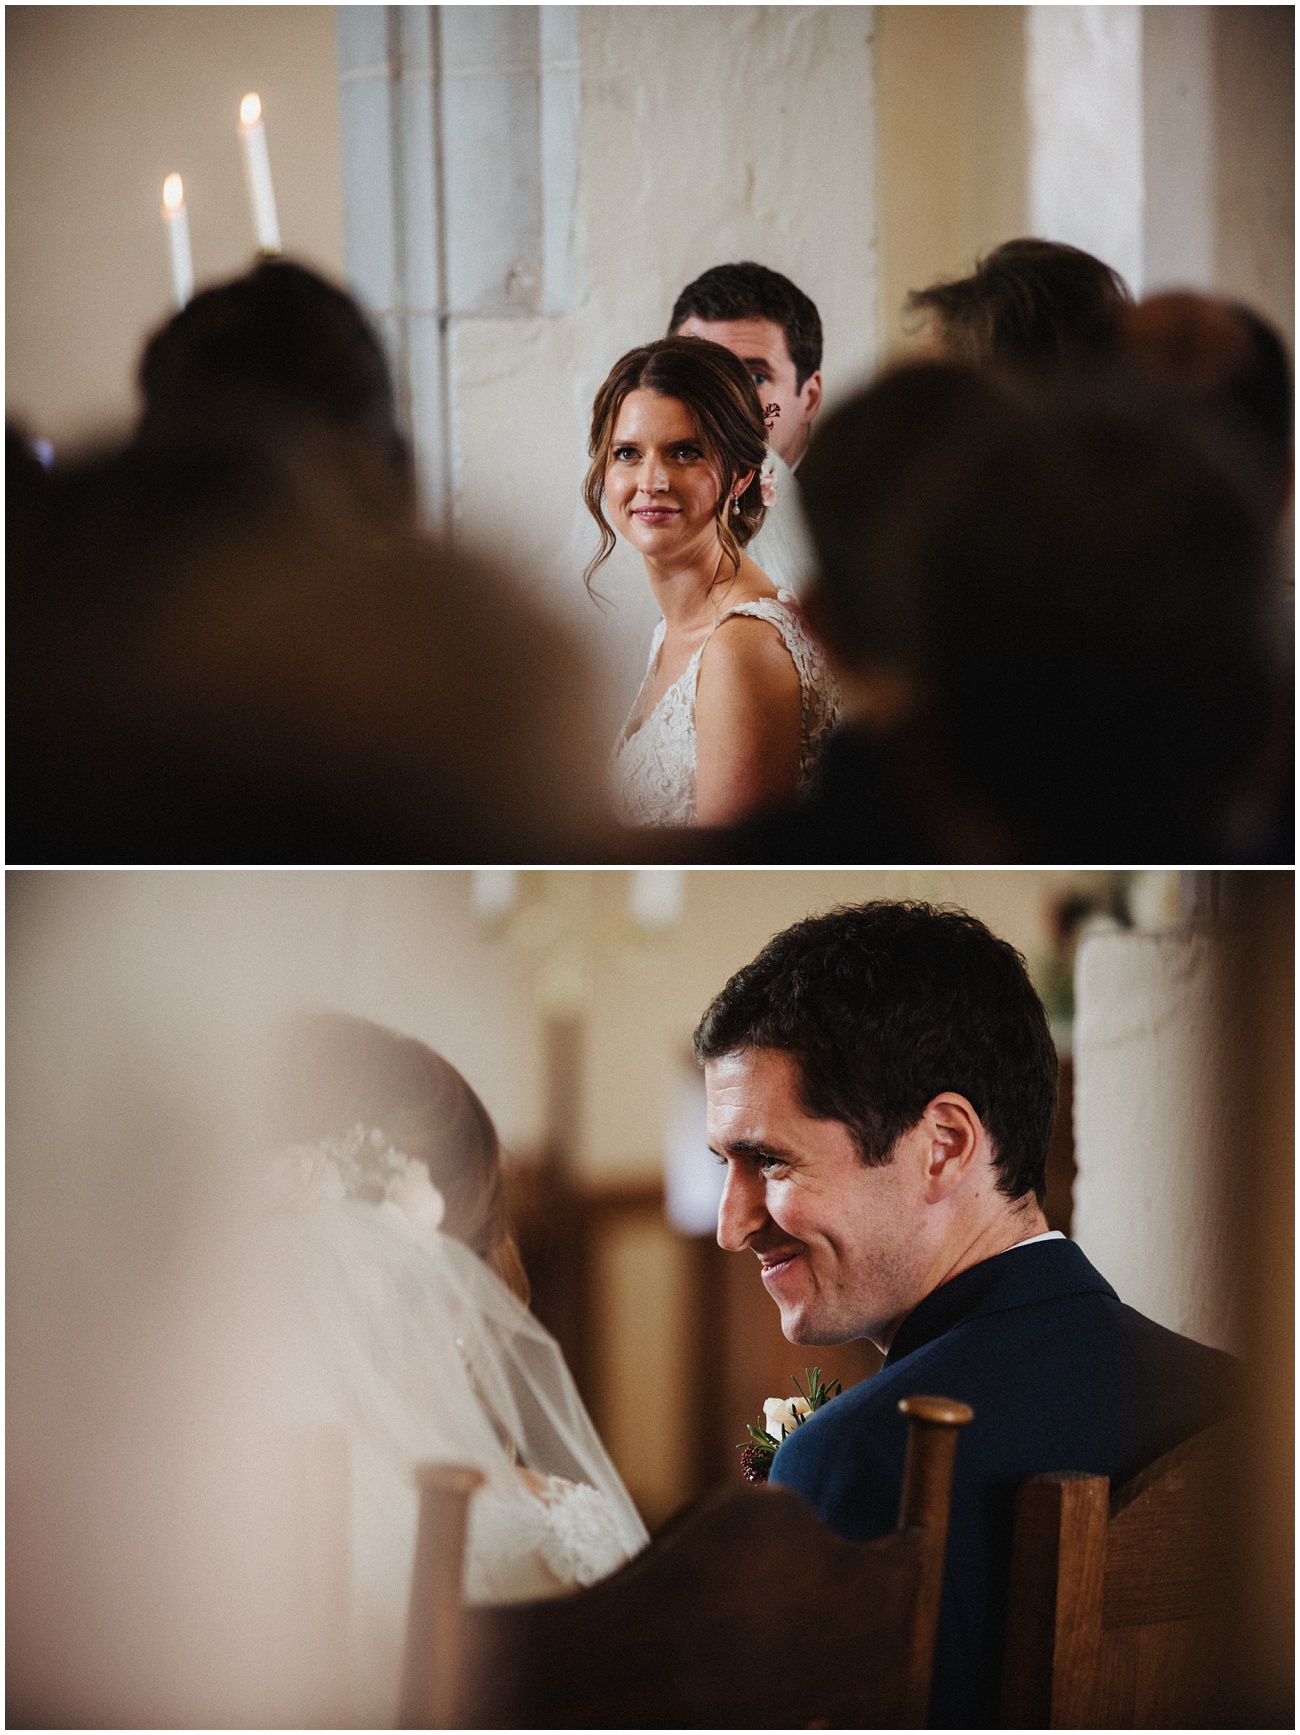 Portrait of the bride and groom during the ceremony